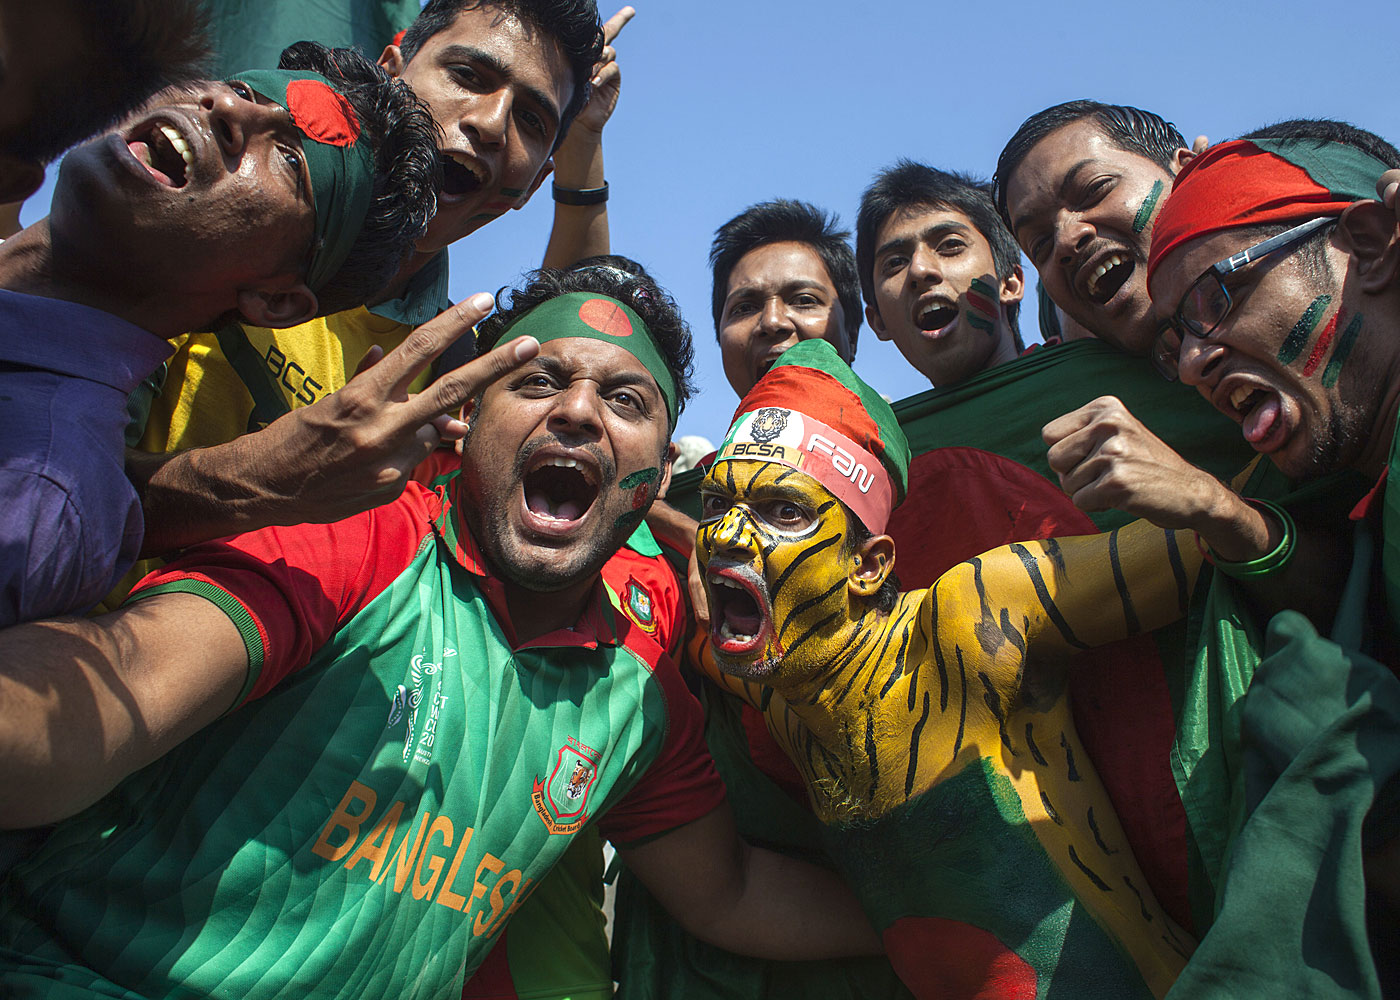 Fierce like us: Bangladesh's cricket fans stood by their team through the worst of times, and when it's time to celebrate, they don't hold back